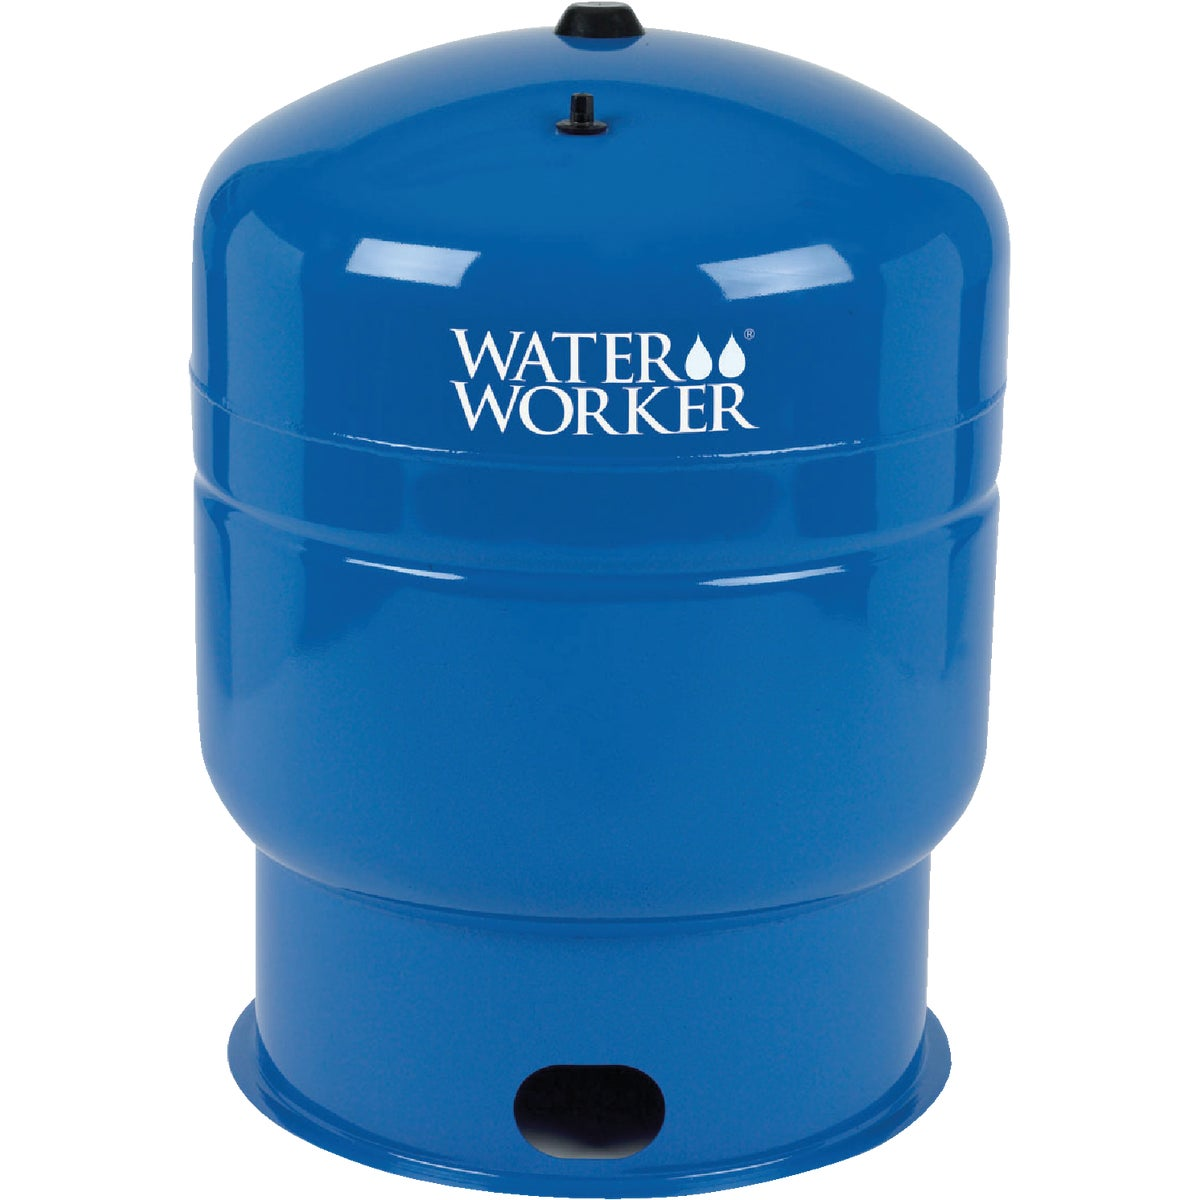 44GAL VERTICAL WELL TANK - HT-44B by Water Worker